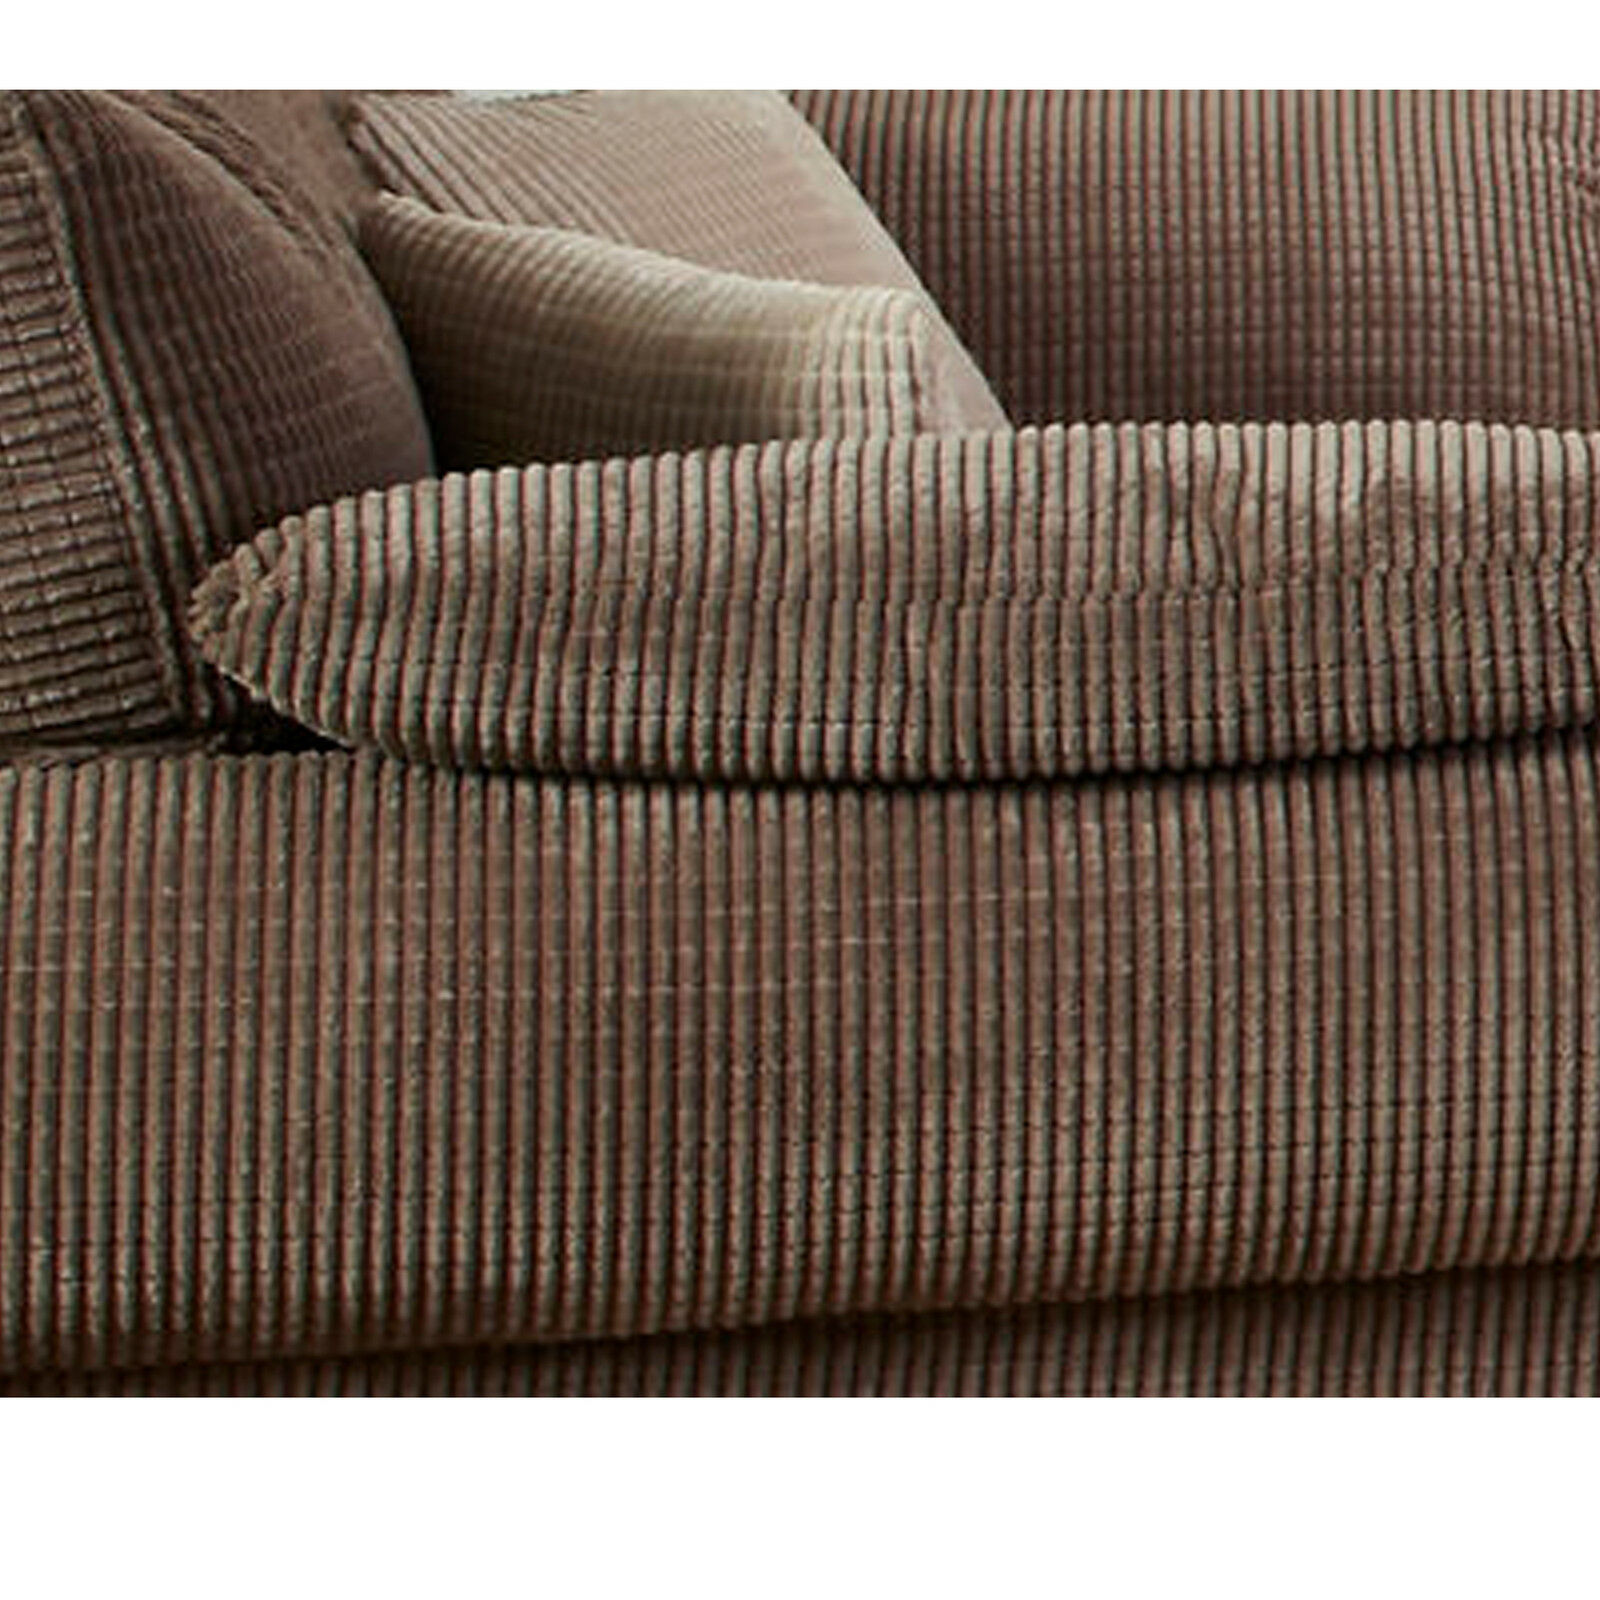 brick effect soft velvet jumbo cord upholstery sofa fabric material in chocolate ebay. Black Bedroom Furniture Sets. Home Design Ideas